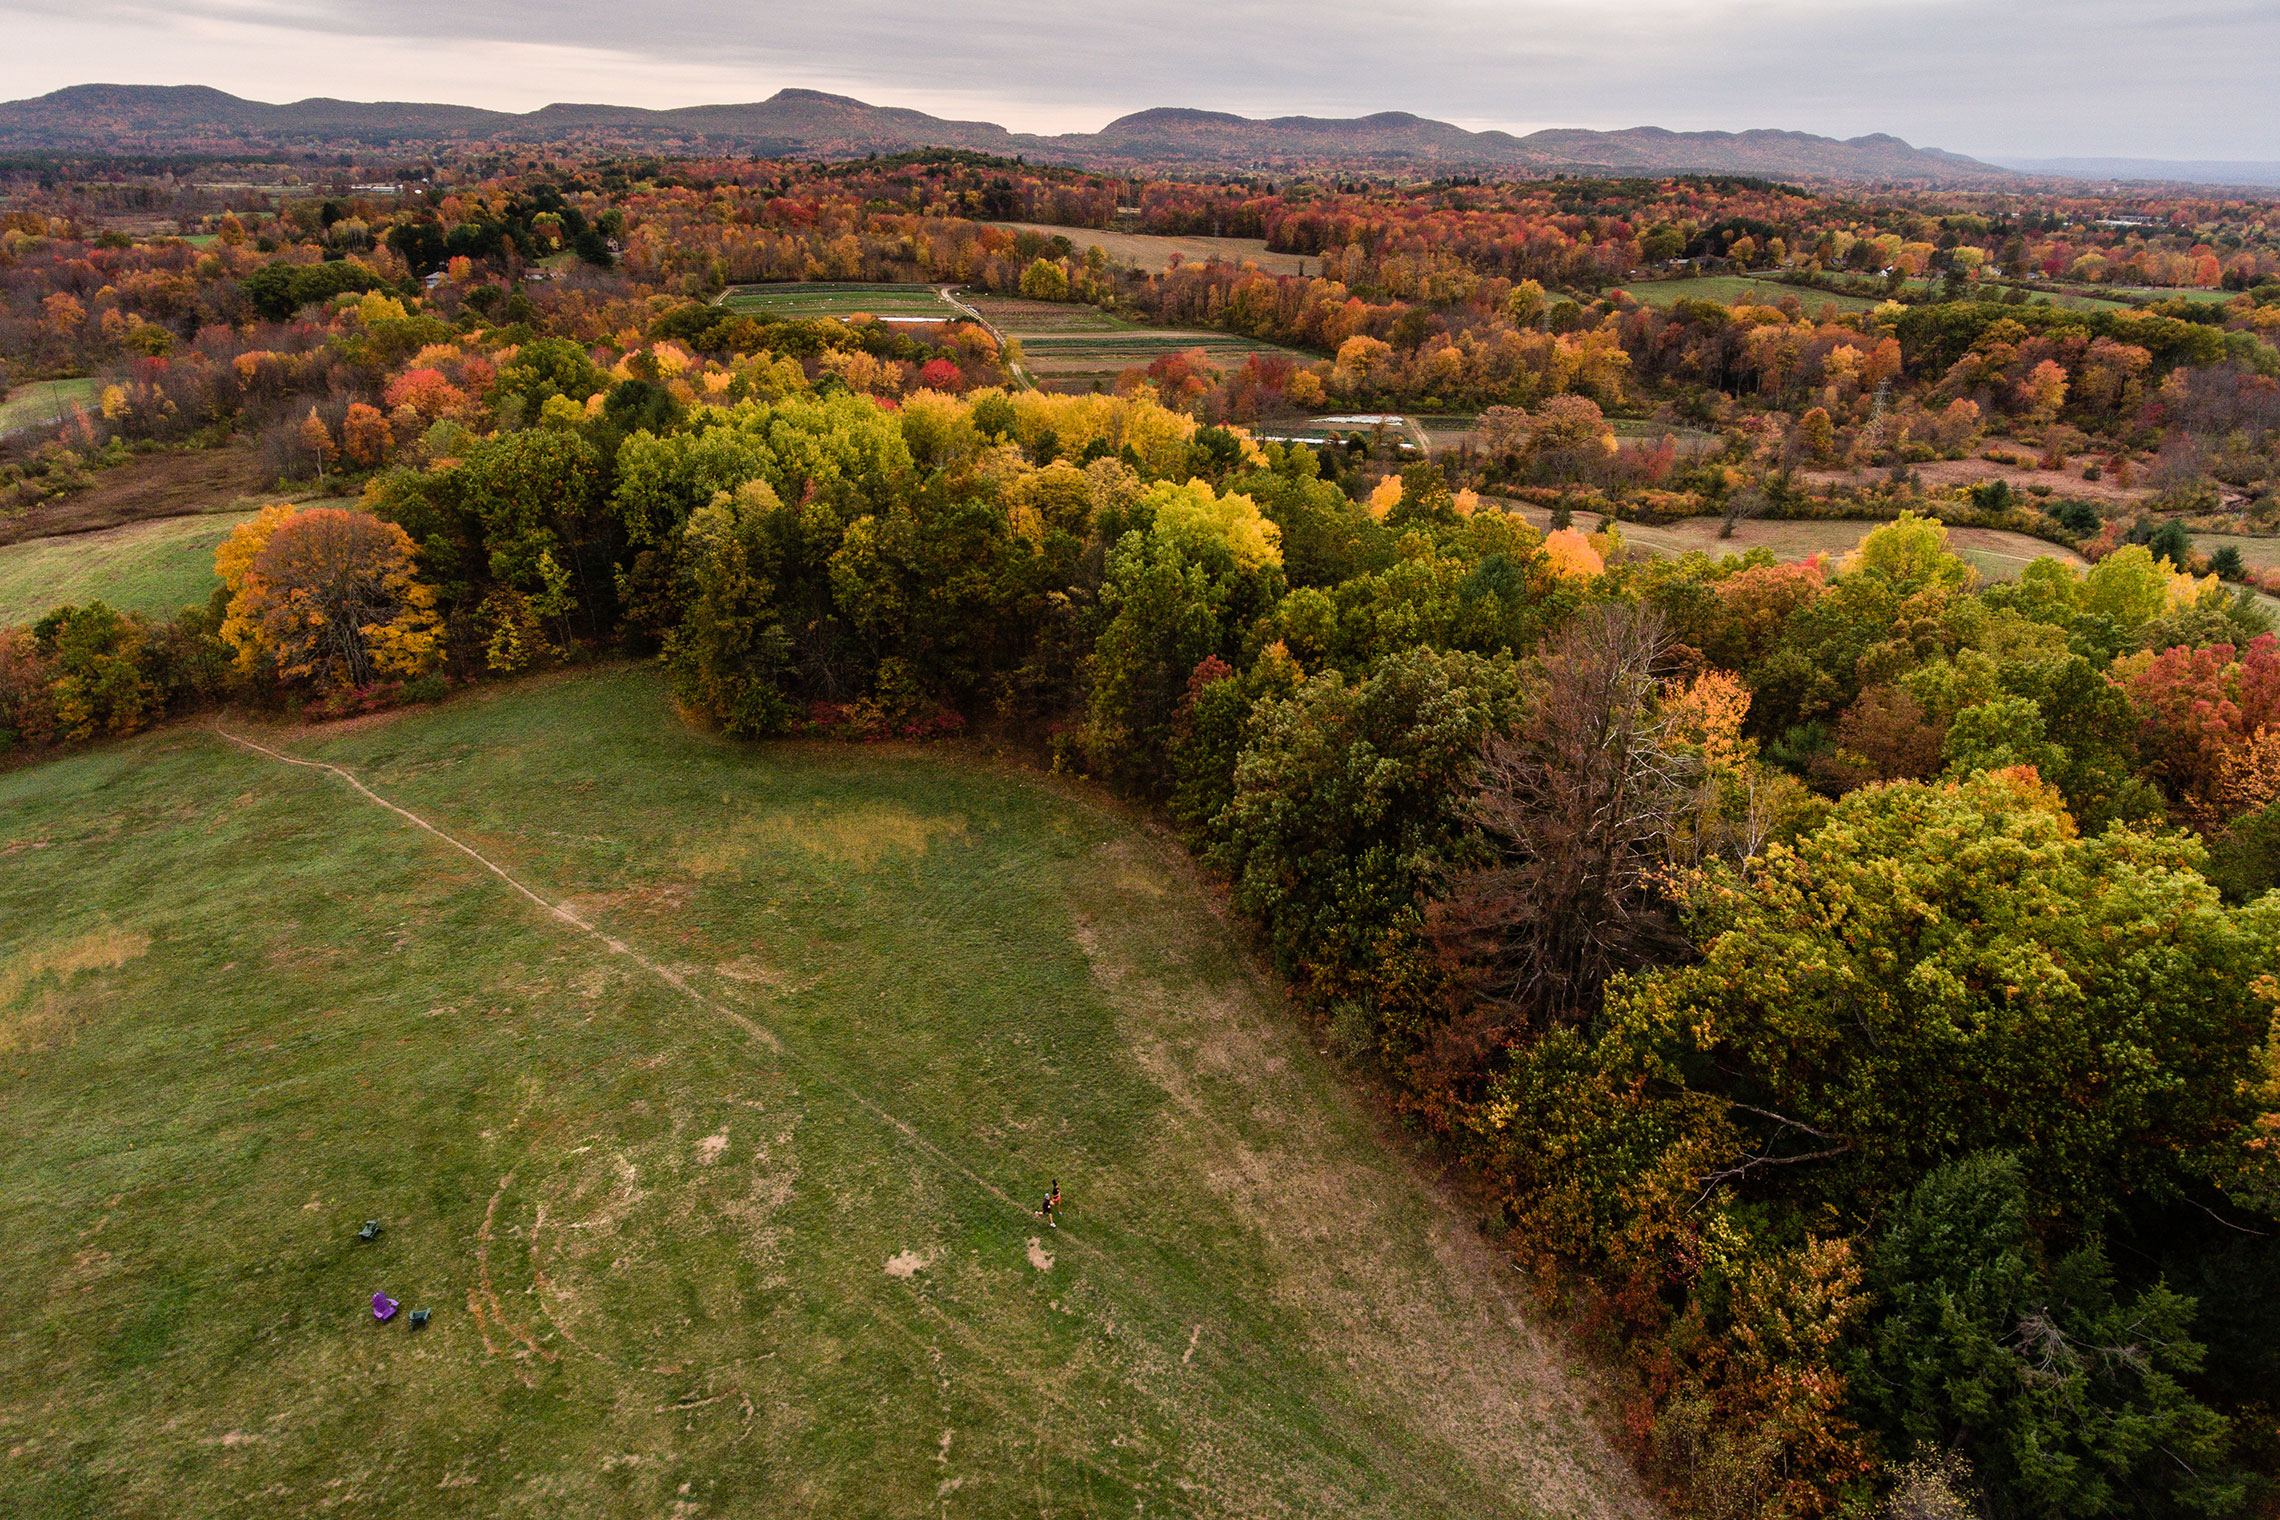 Aerial view of Amherst College surrounding land in autumn.